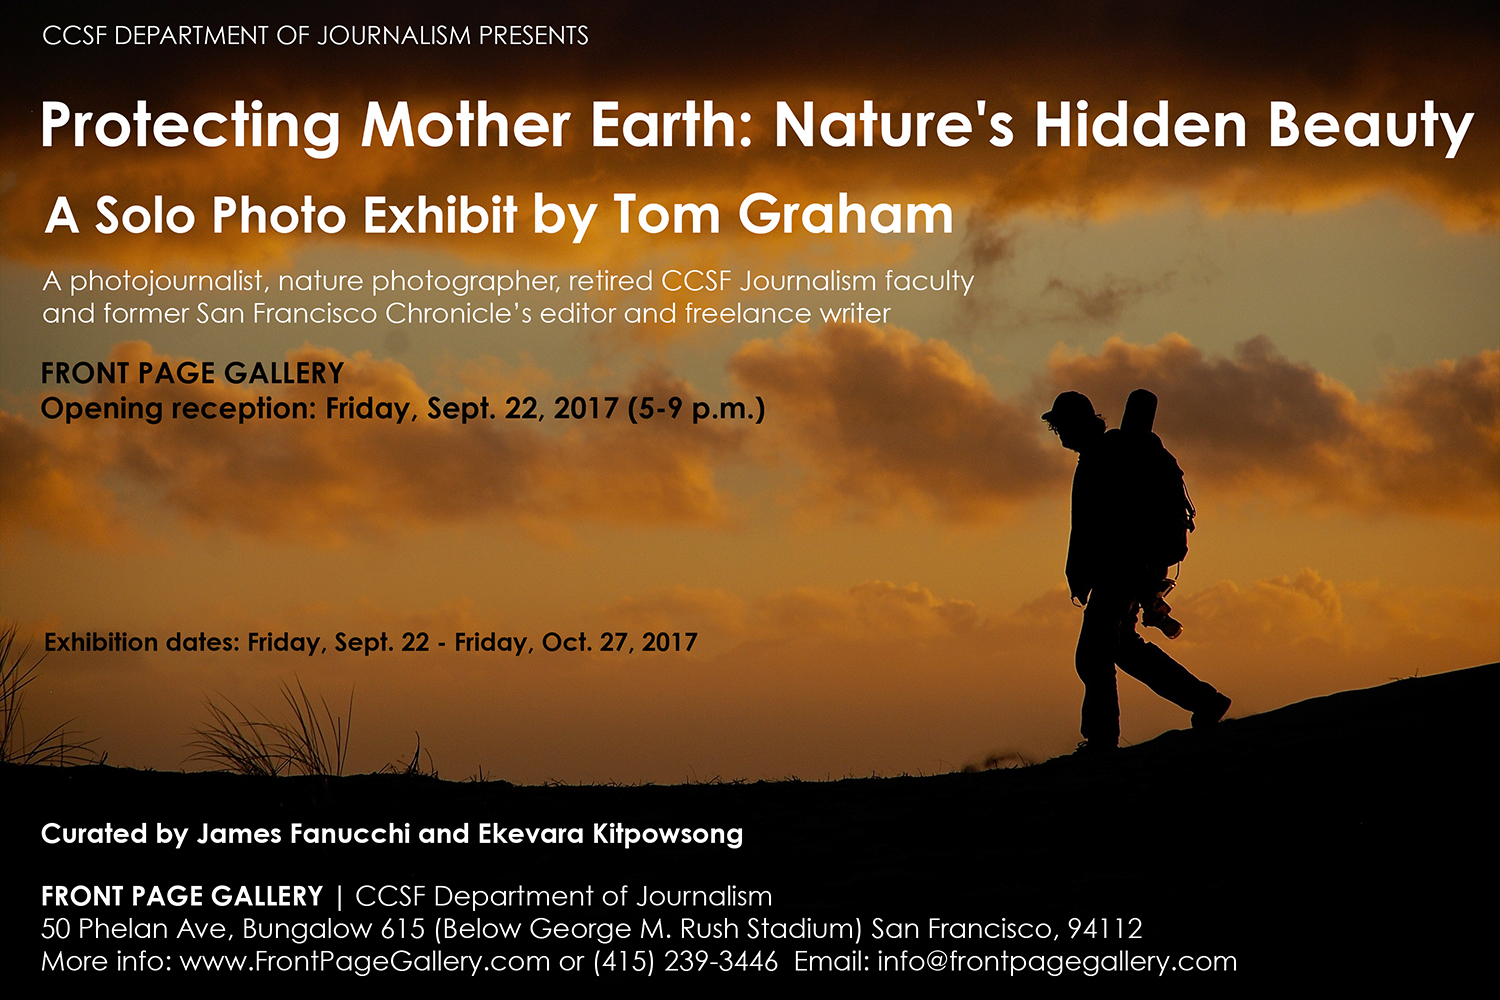 Tom Graham Solo Photo Exhibit at Front Page Gallery